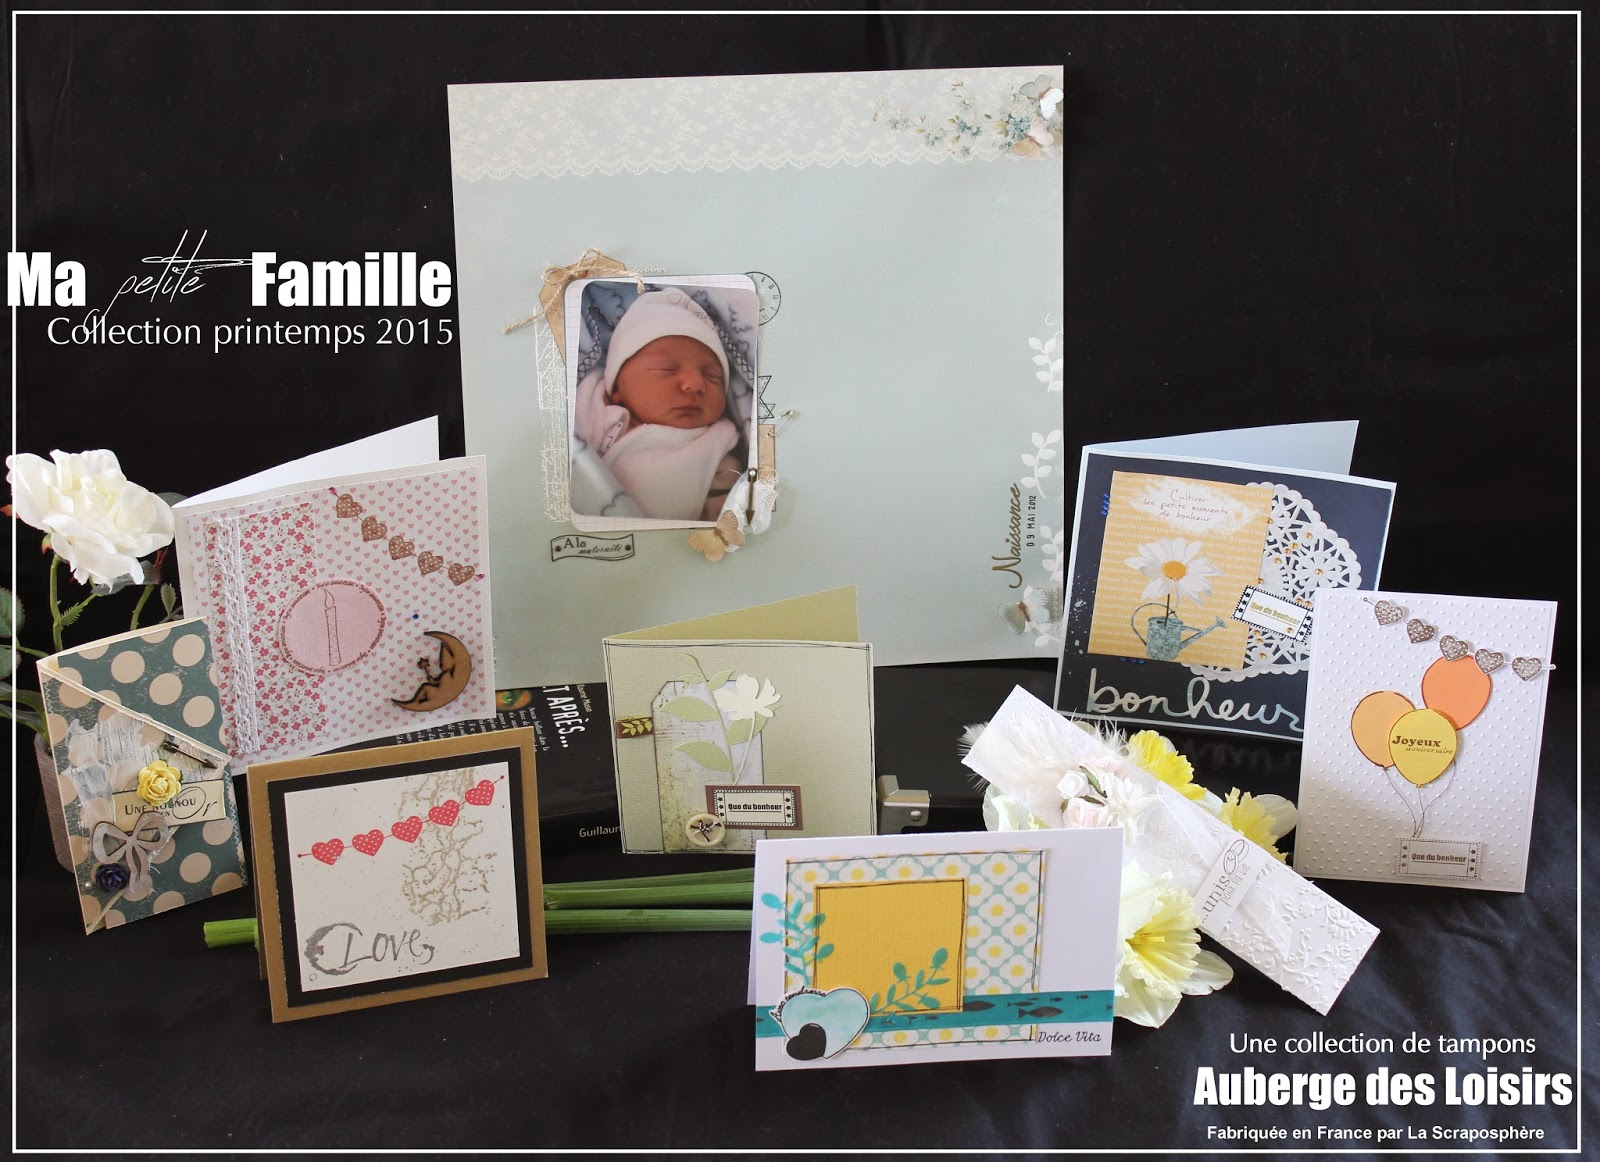 http://aubergedesloisirs.blogspot.fr/2015/03/nouvelle-collection-ma-petite-famille.html